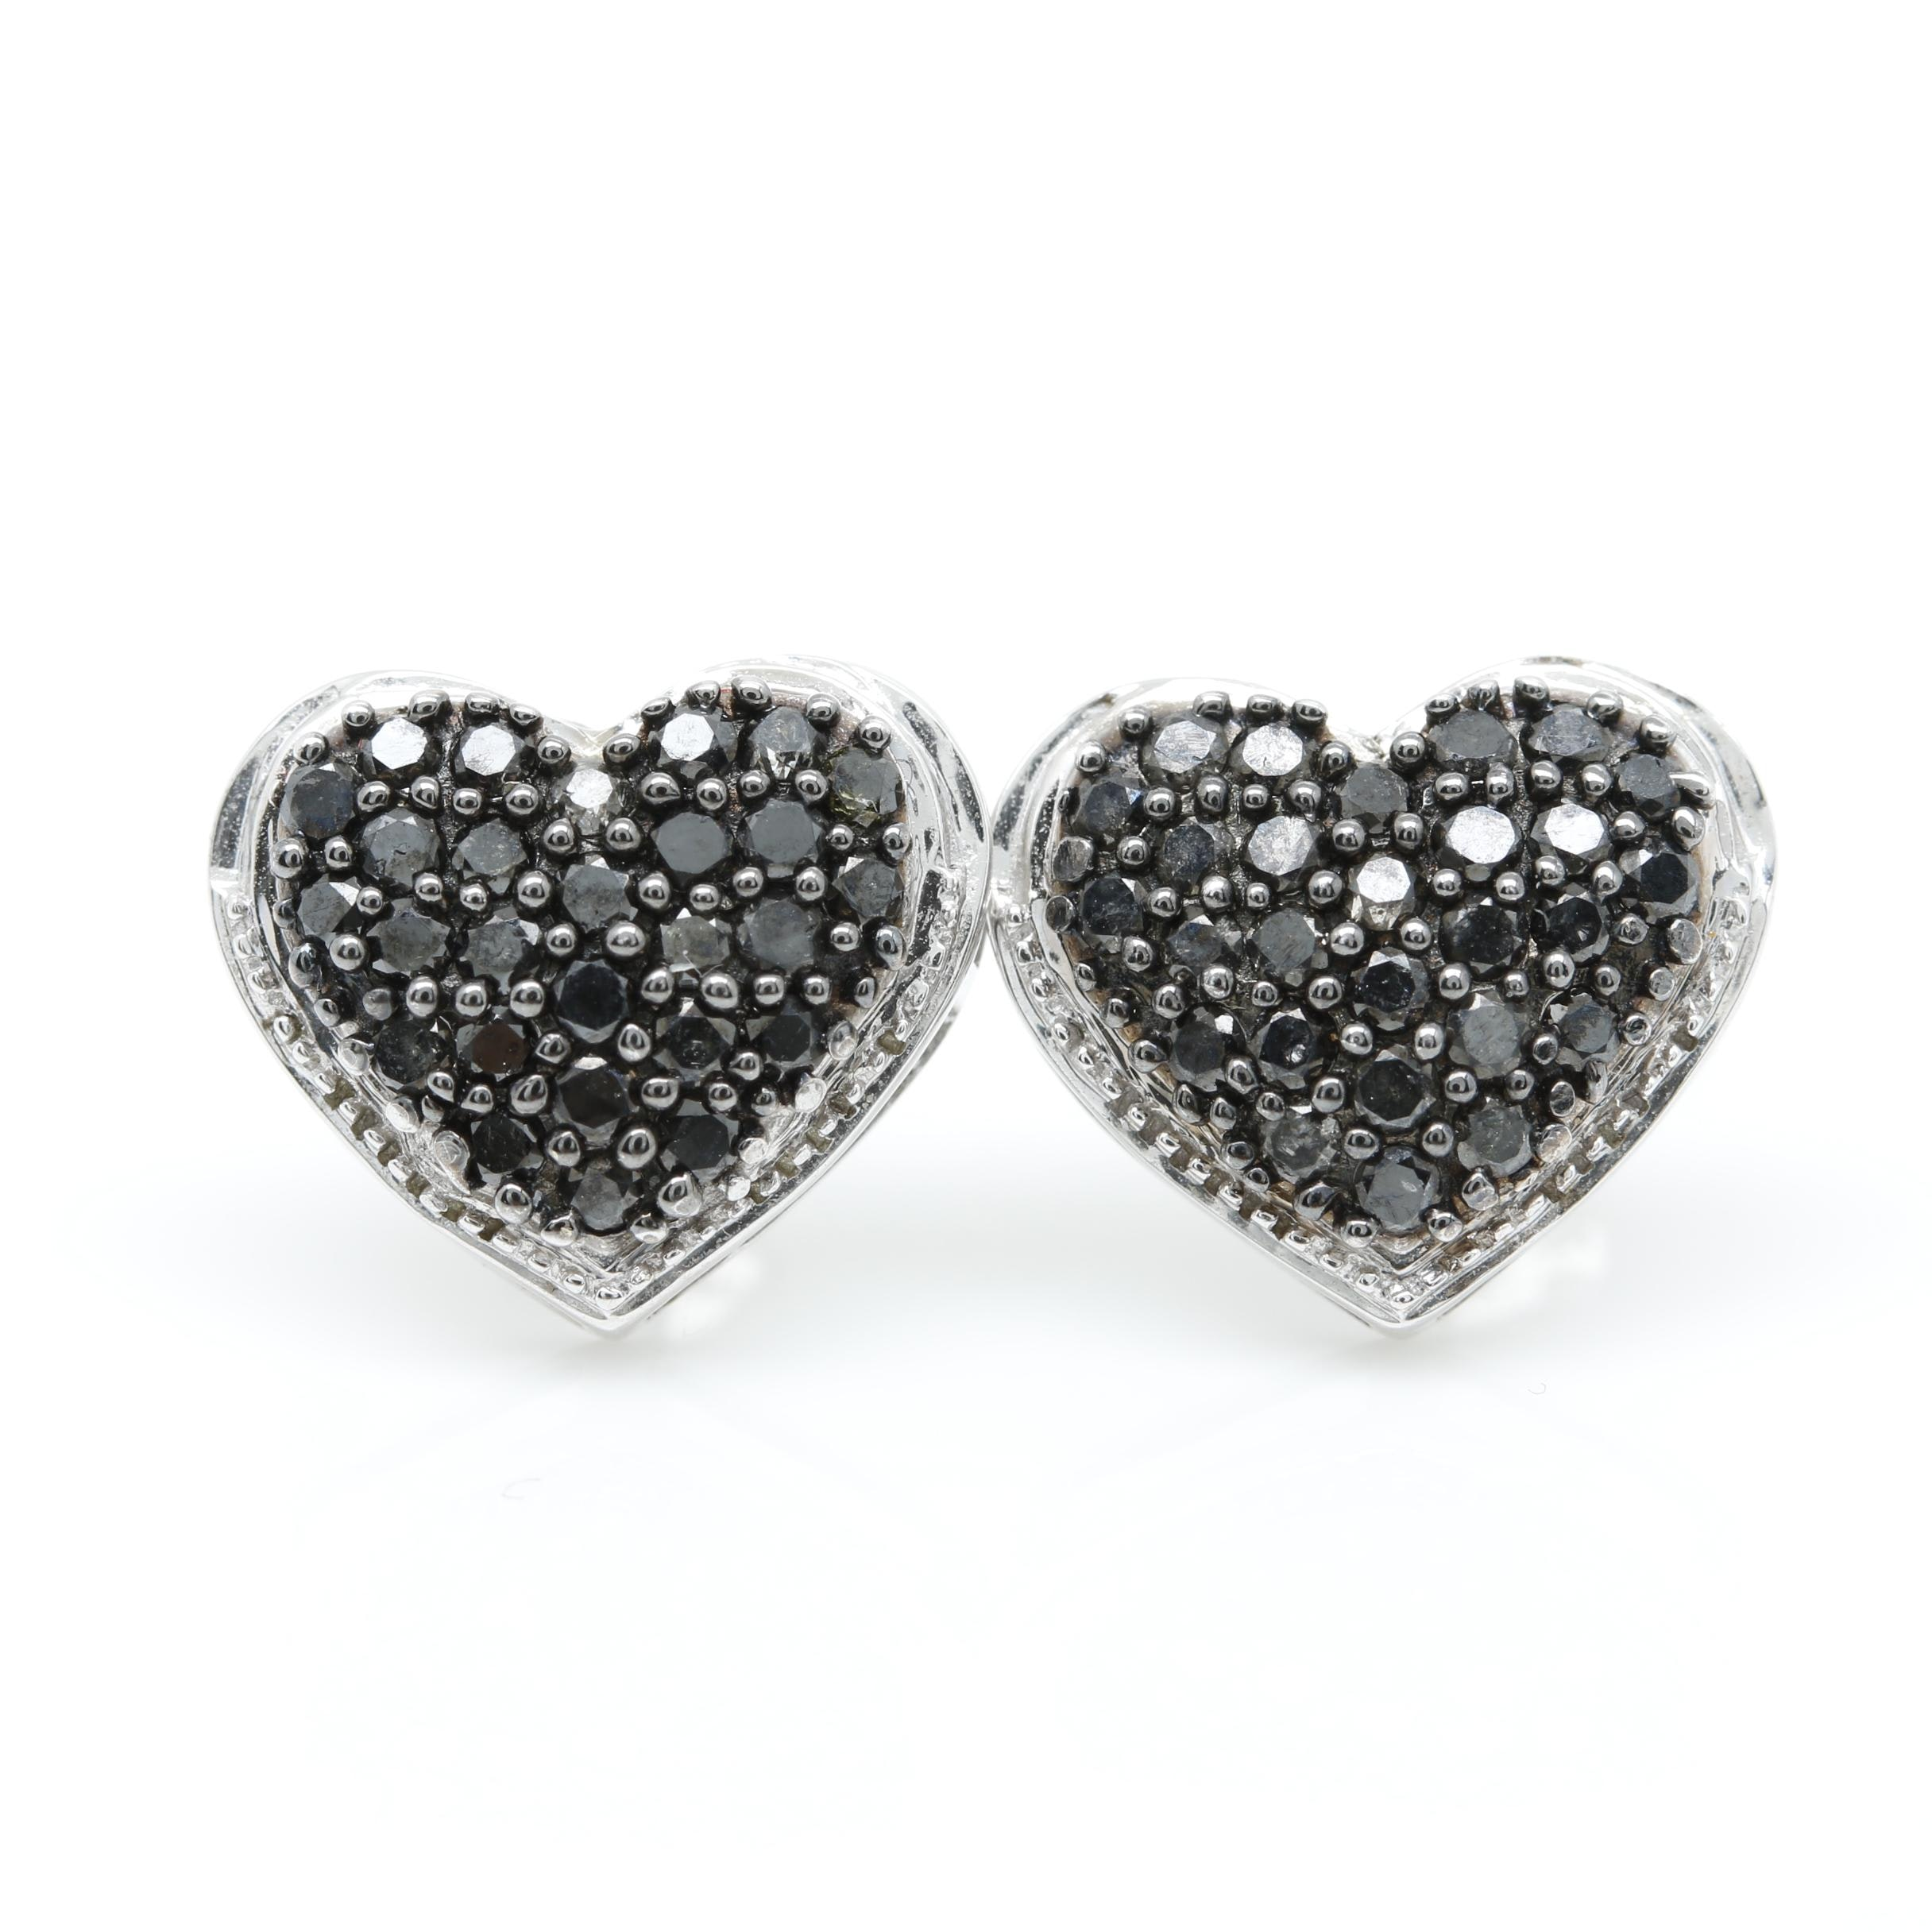 14K White Gold Black Diamond Heart Earrings